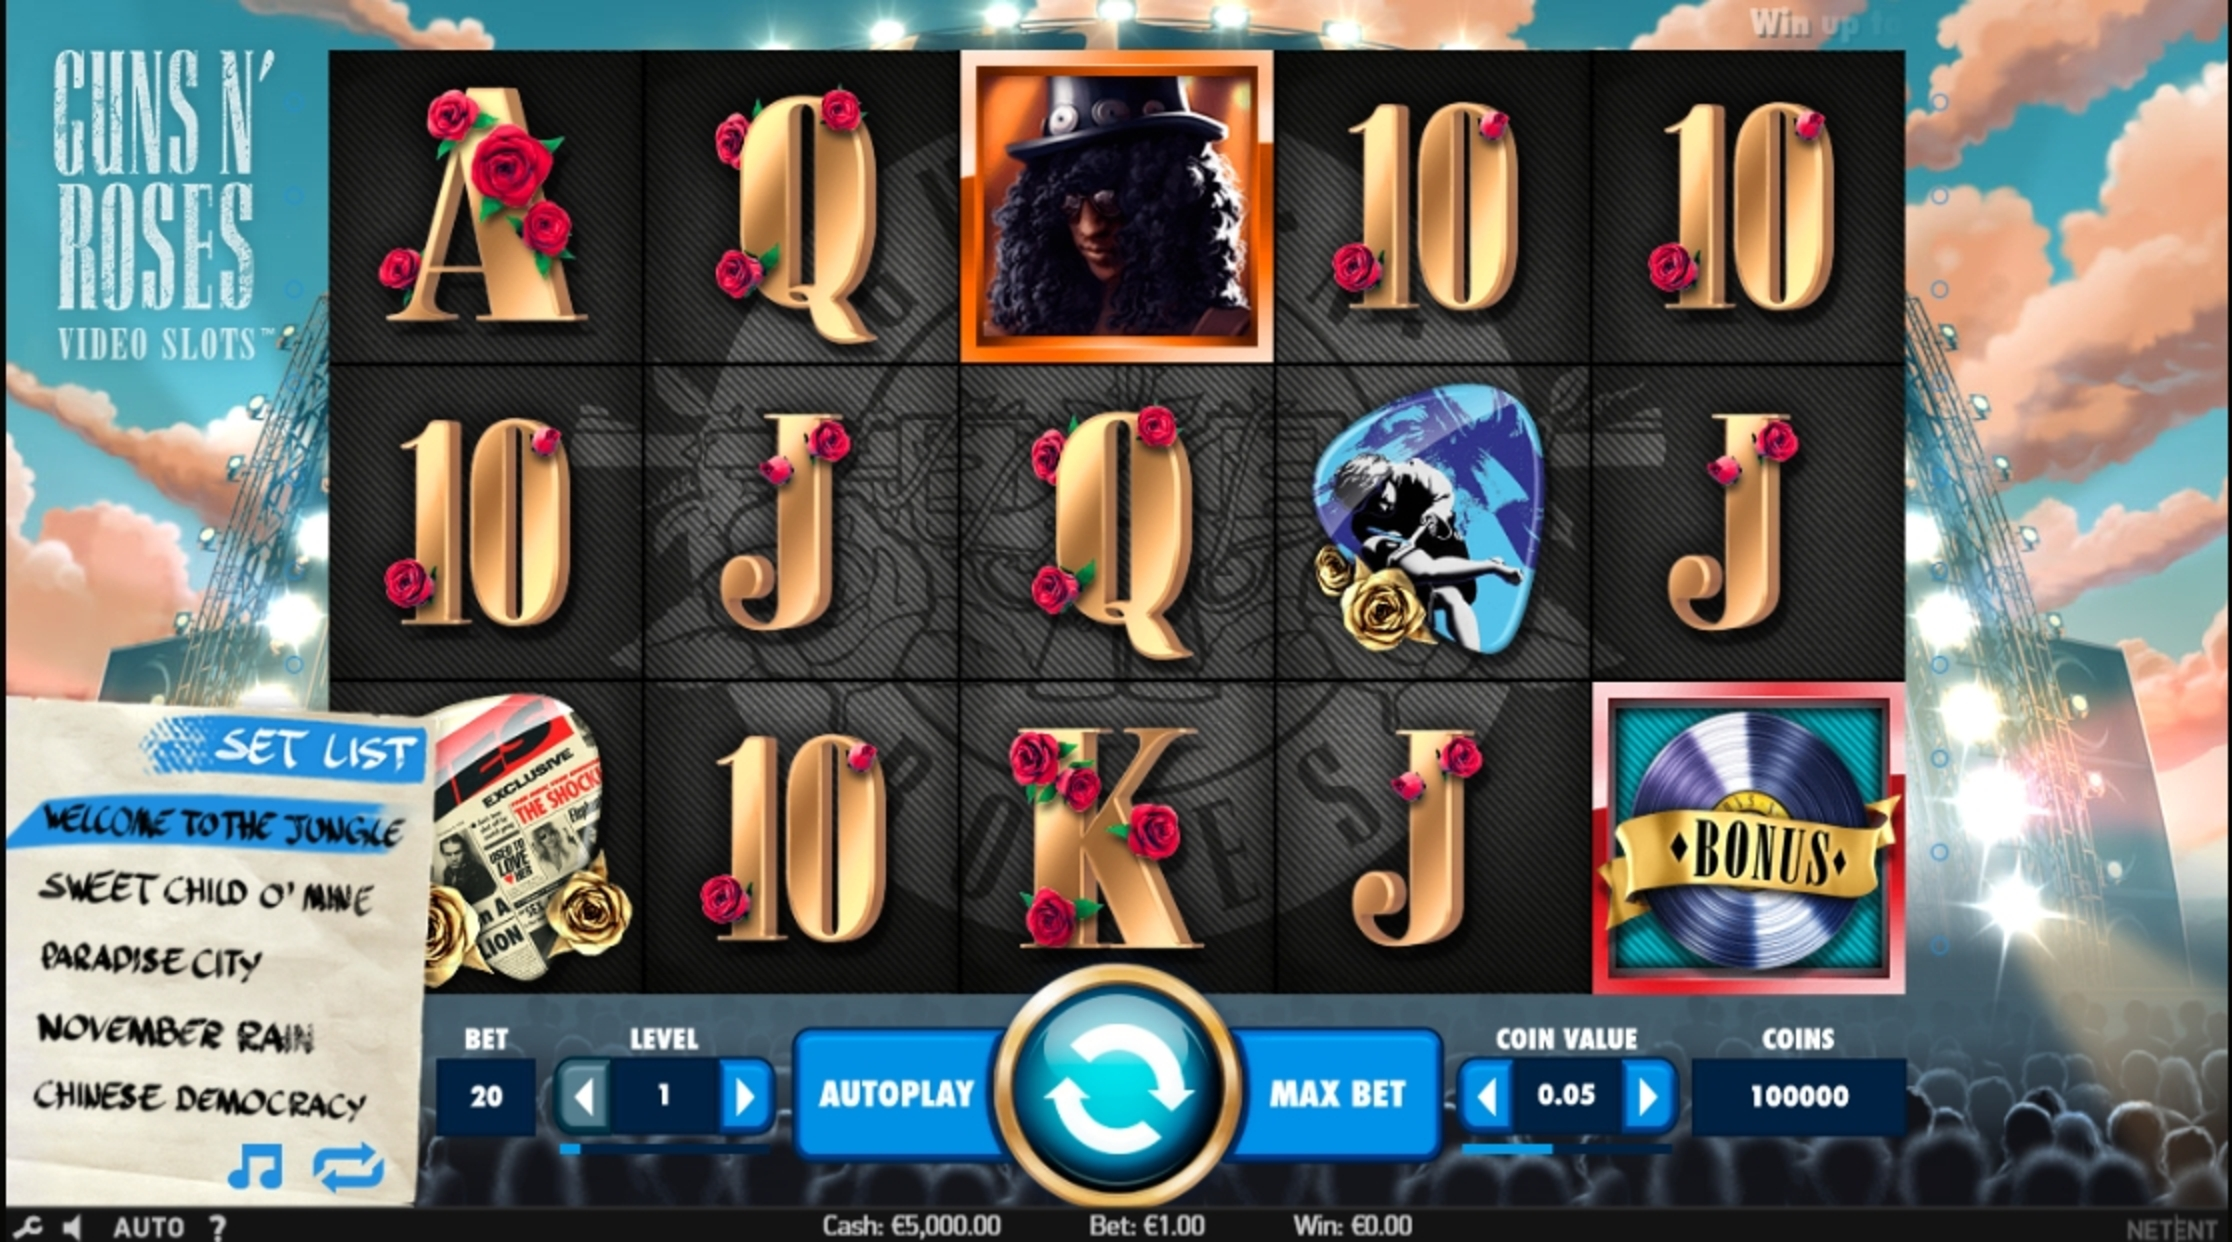 Reels in Guns N' Roses Slot Game by NetEnt